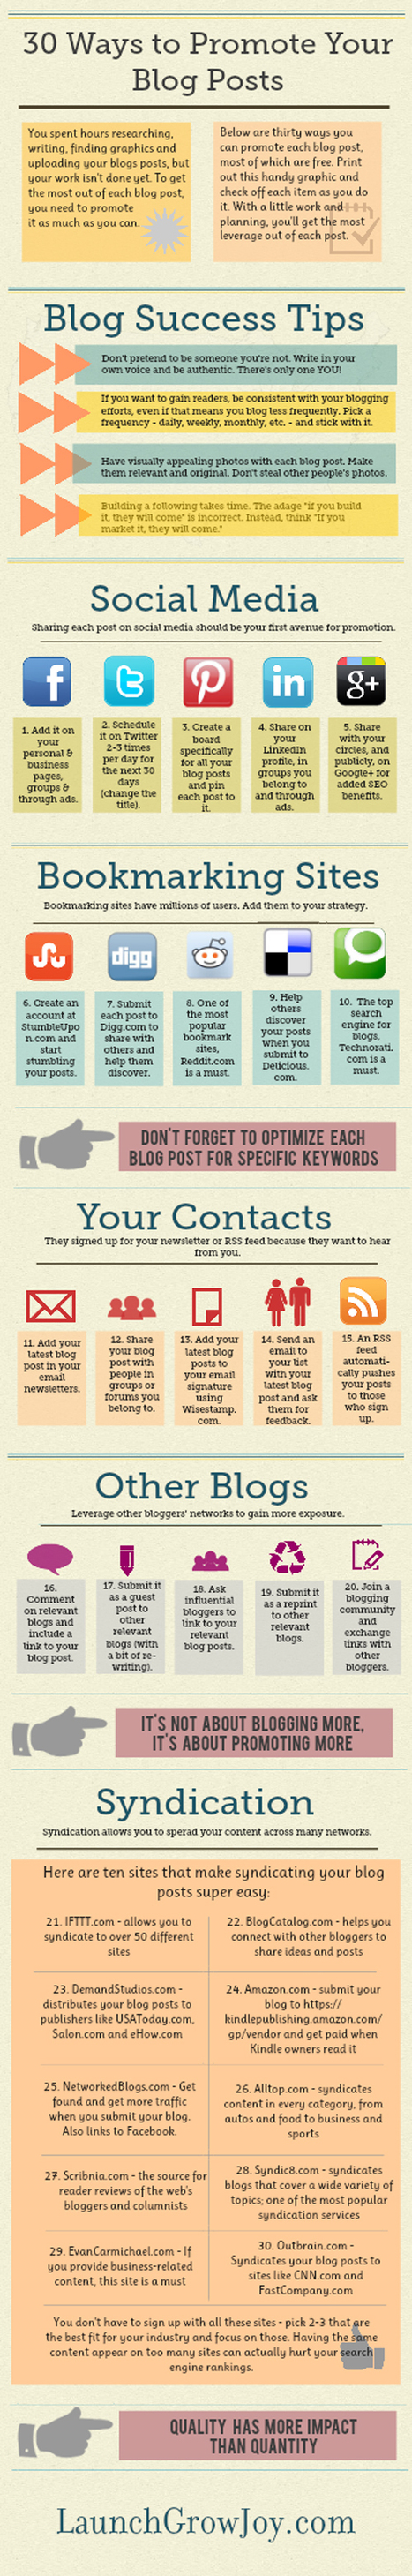 30 ways to promote your blog posts and to drive more traffic to your blog – infographic | EcritureS - WritingZ | Scoop.it